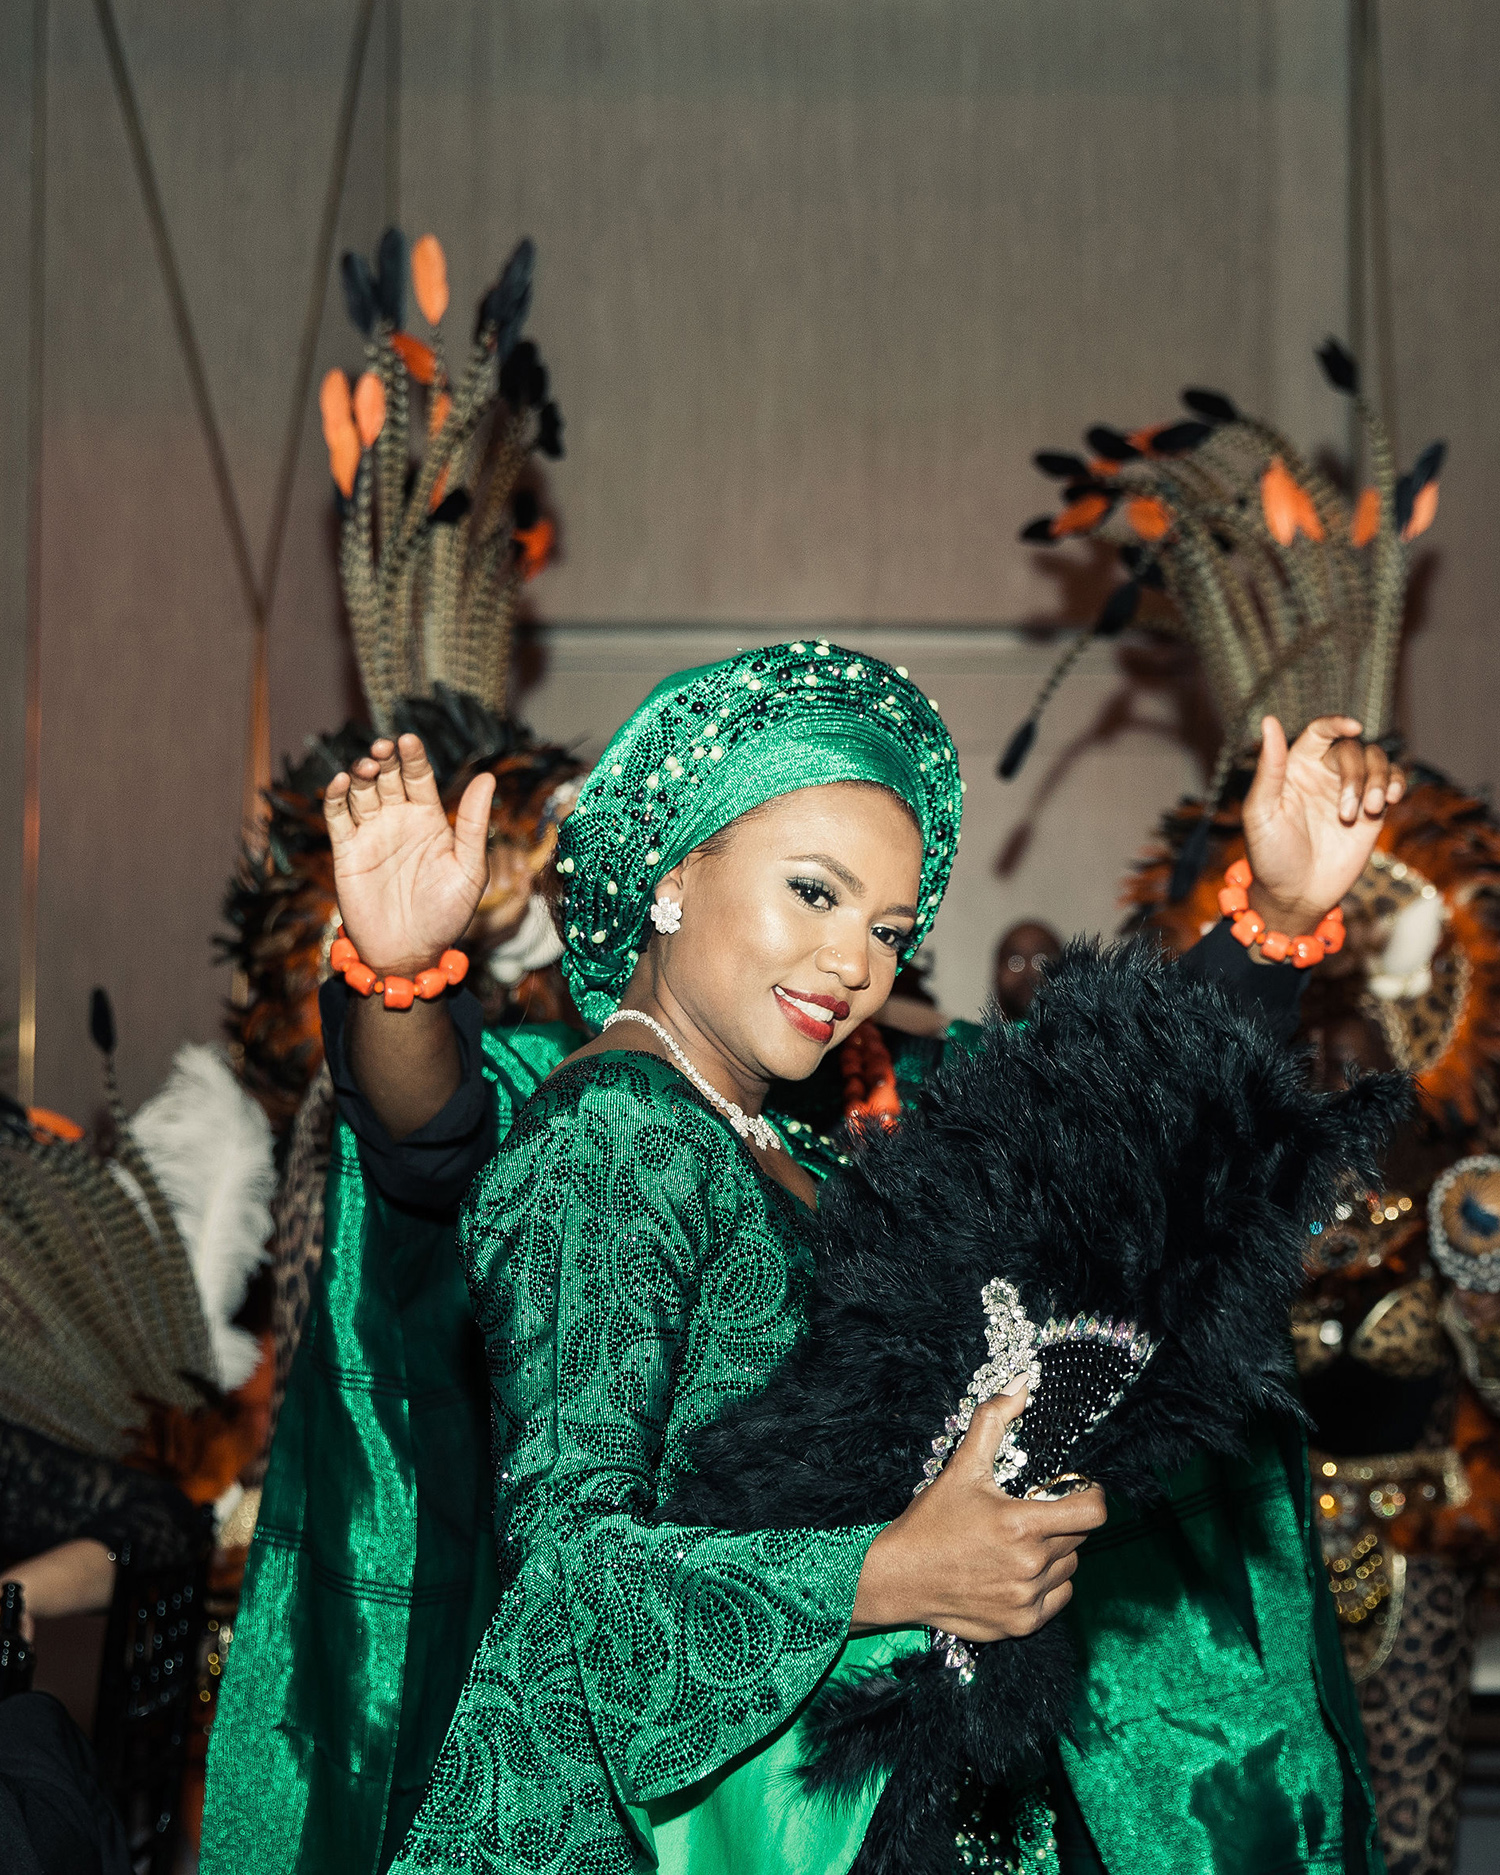 vanessa abidemi wedding bride in green outfit